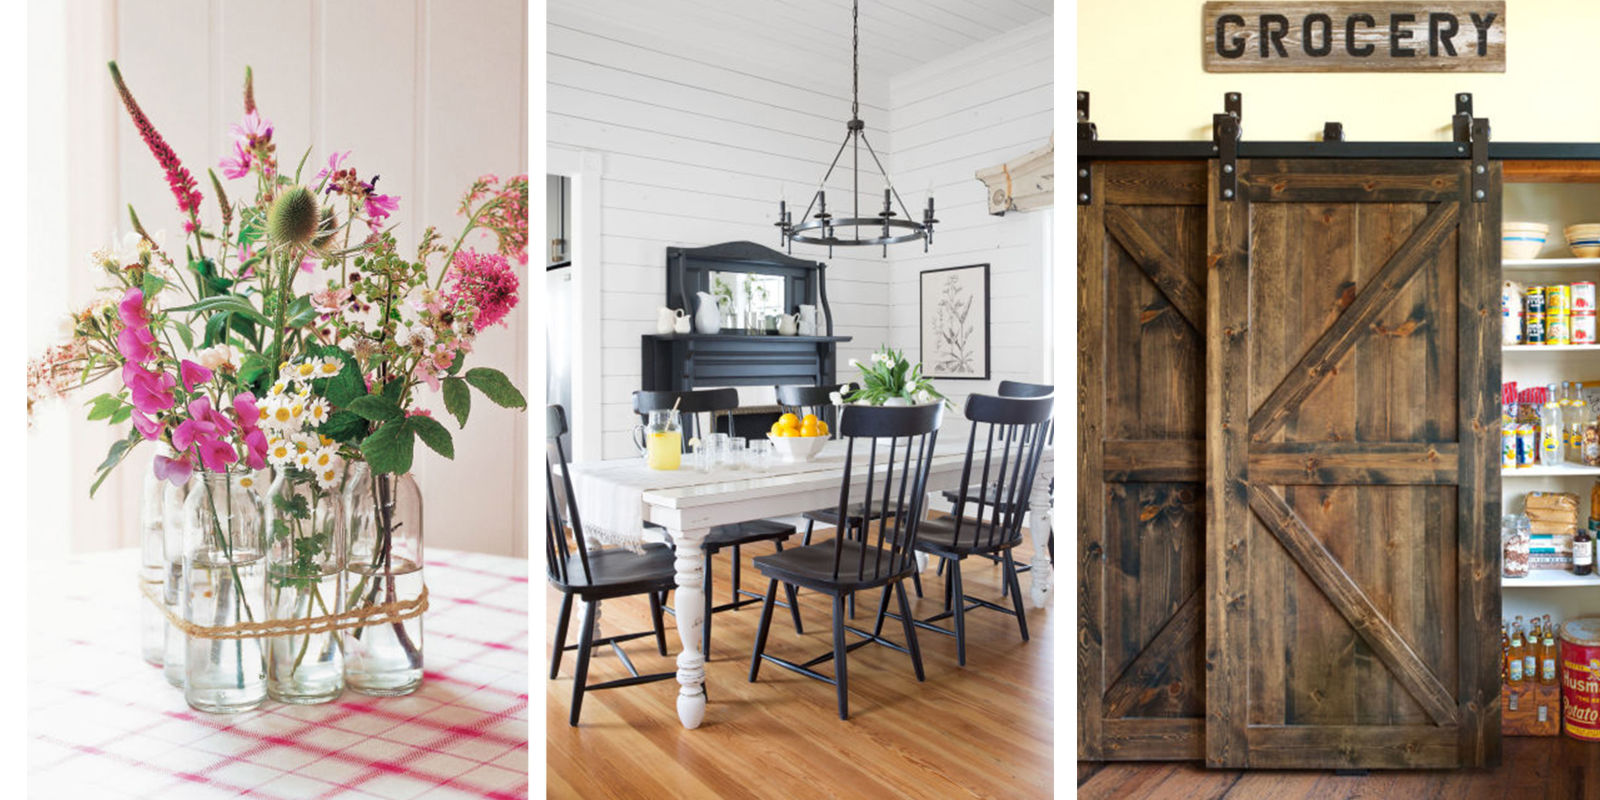 Rustic Design Ideas: 25 Ways To Add Farmhouse Style To Any Home